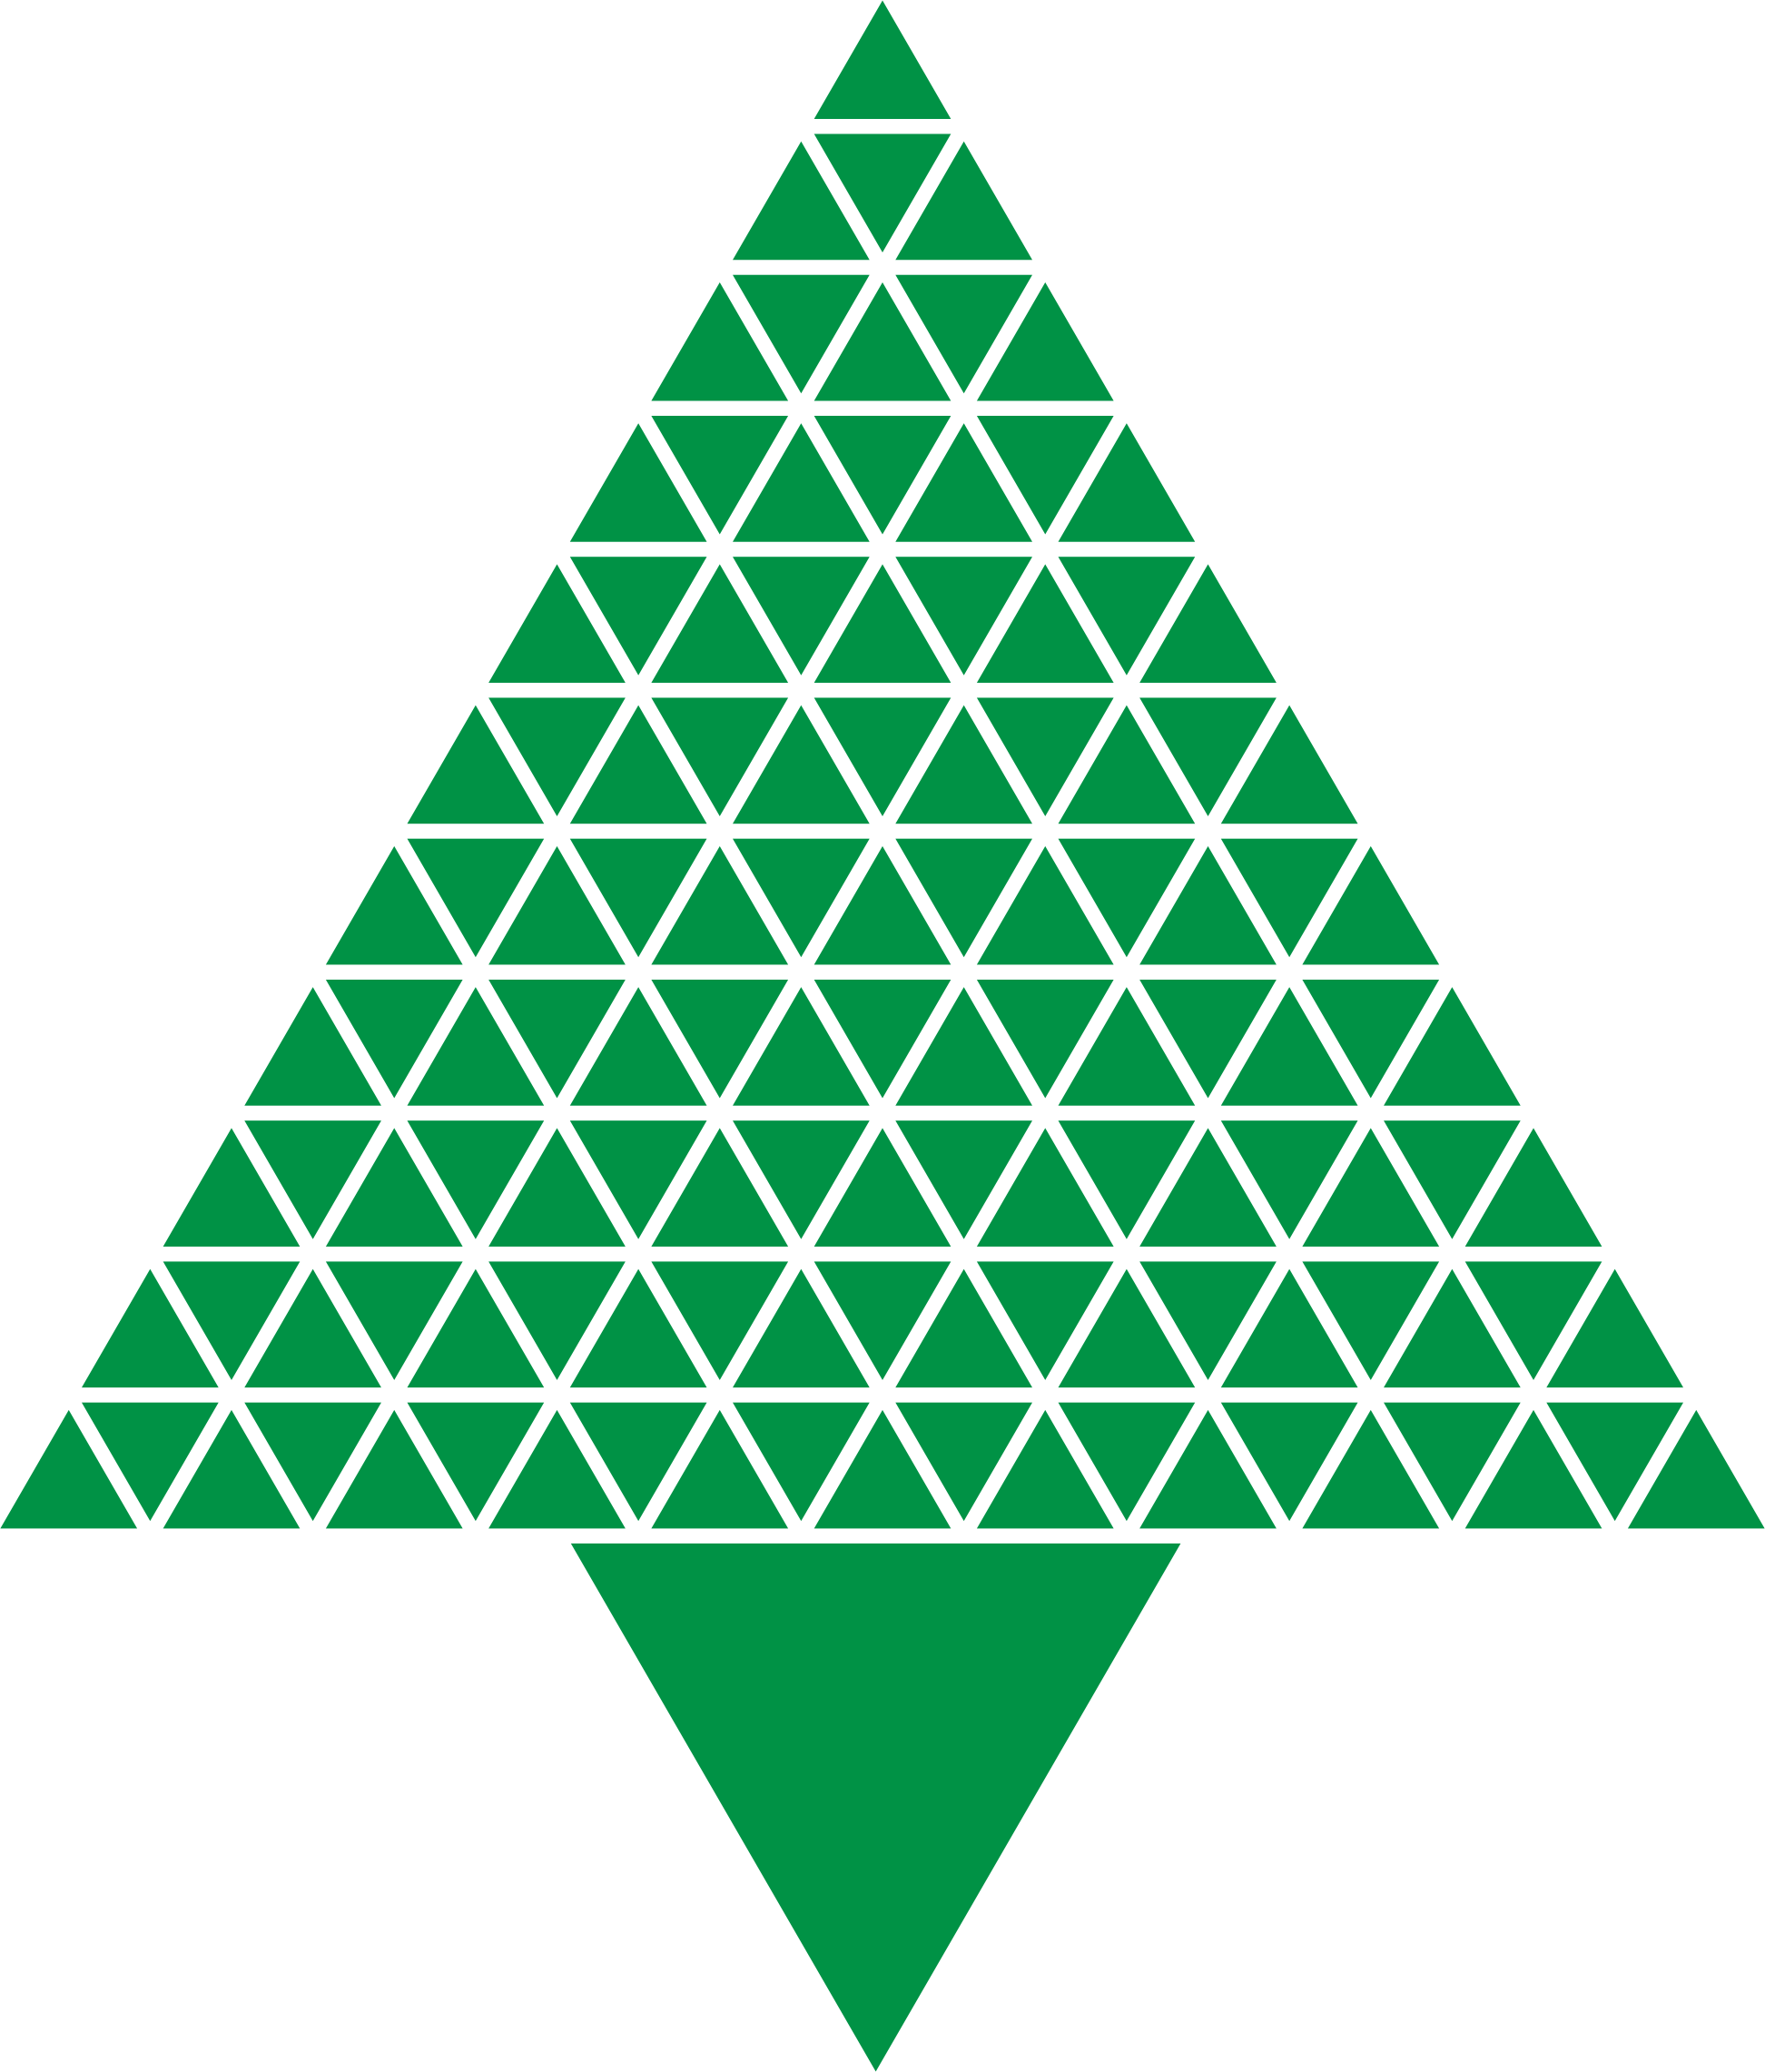 Abstract green png. Triangular christmas tree icons